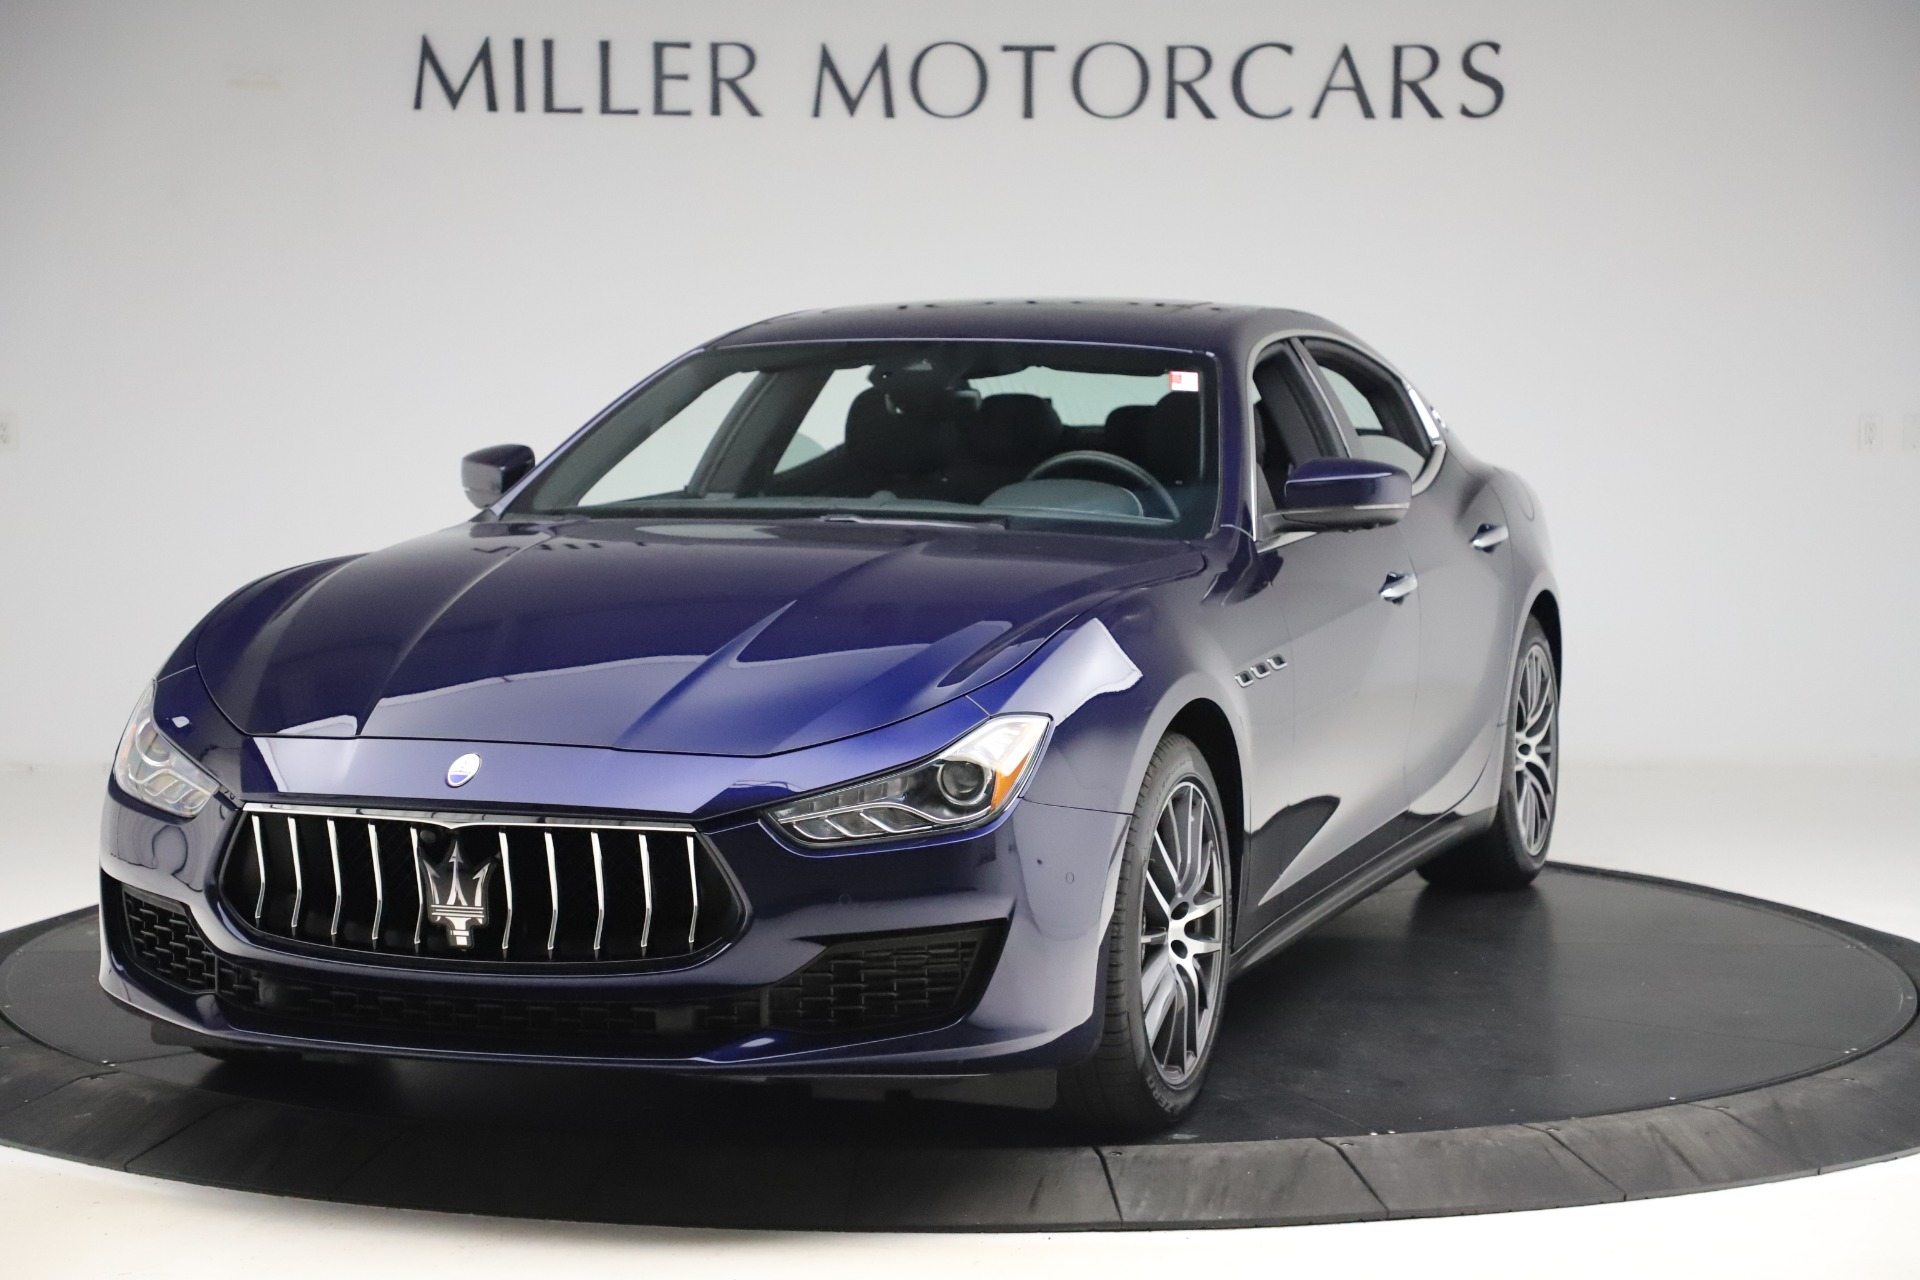 New 2019 Maserati Ghibli S Q4 for sale $90,765 at Maserati of Westport in Westport CT 06880 1